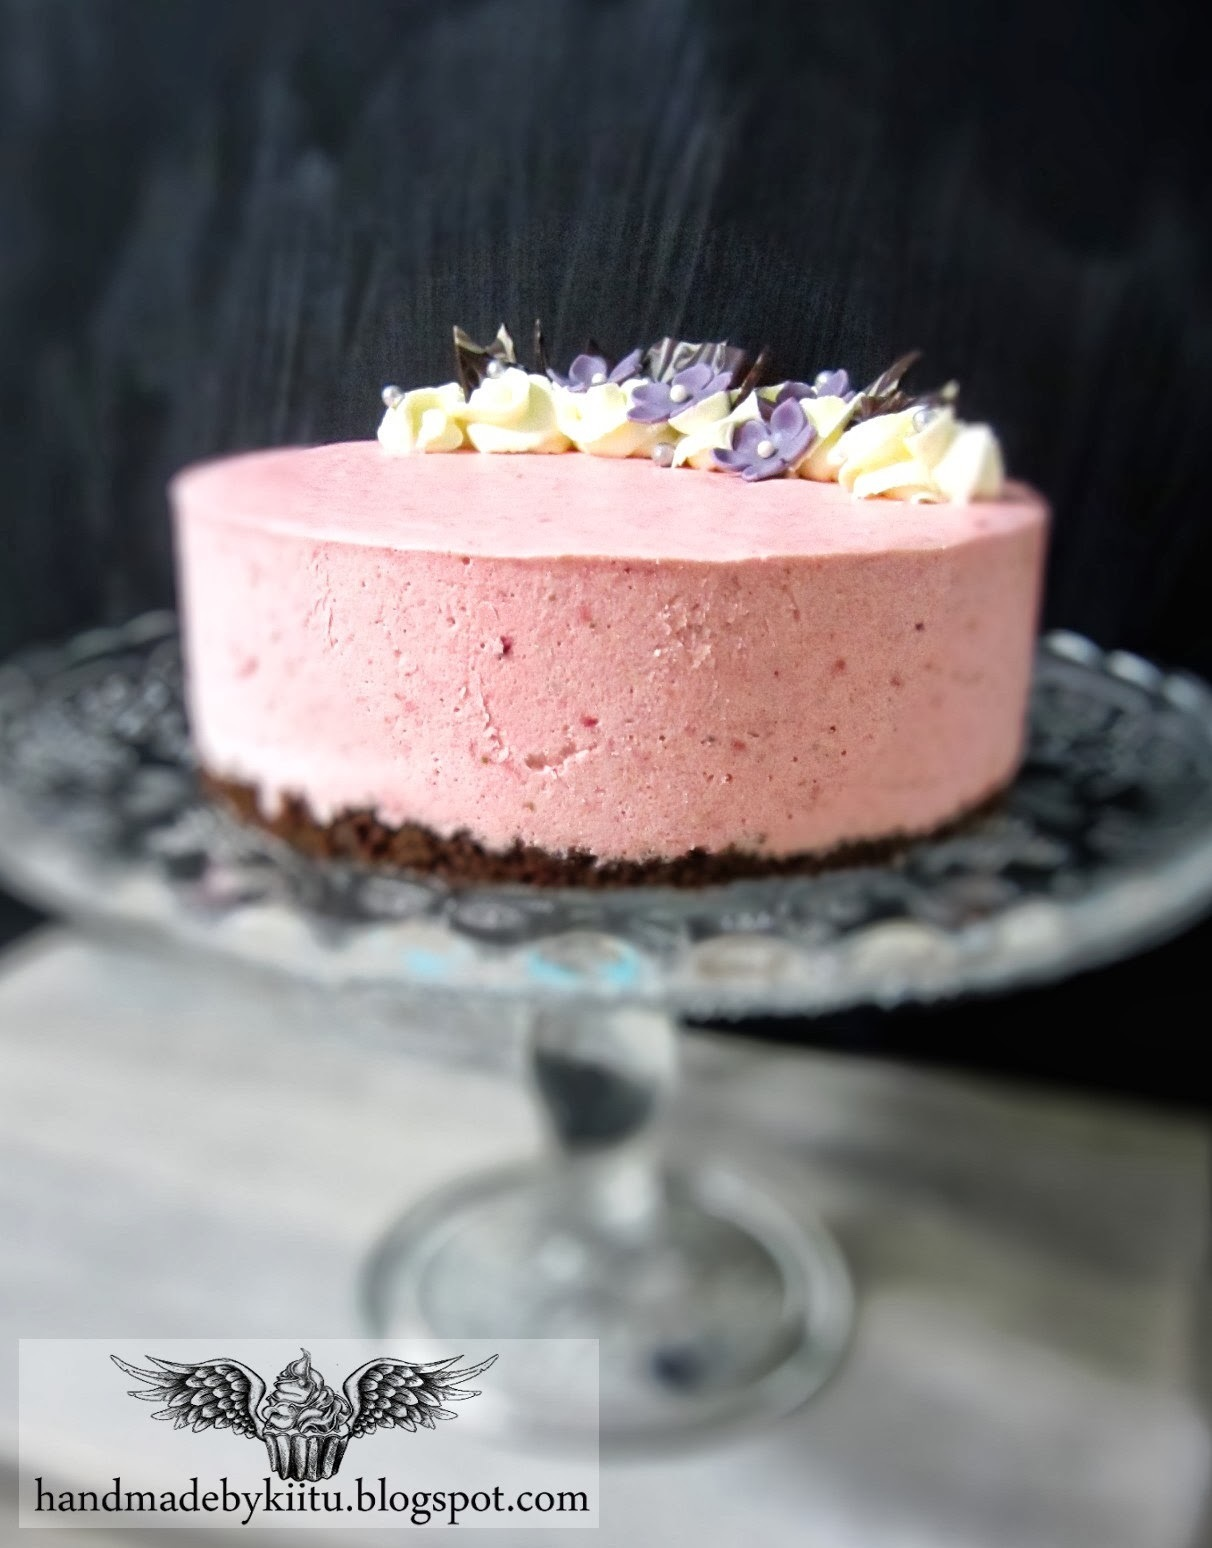 Strawberry/lime cheesecake / Mansikka/limejuustokakku